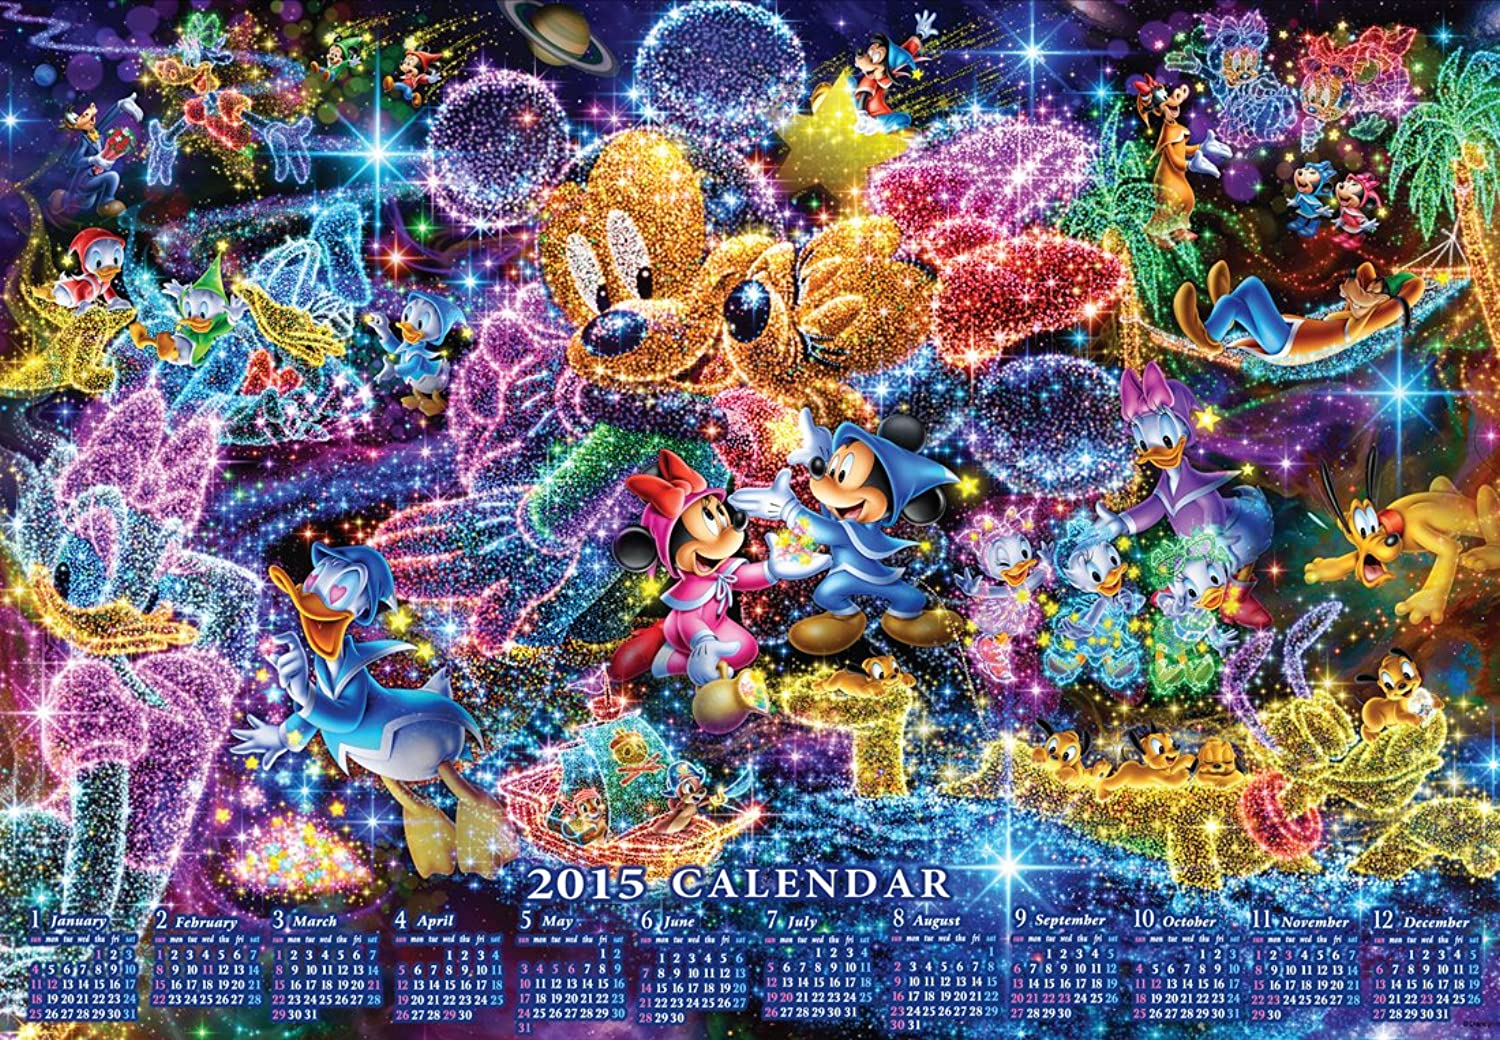 mas preferencial 1000 piece jigsaw puzzle puzzle puzzle Disney calendar to the Estrellas ( 2015 Calendar Jigsaw ) D-1000-439 wishes by Tenyo  venderse como panqueques